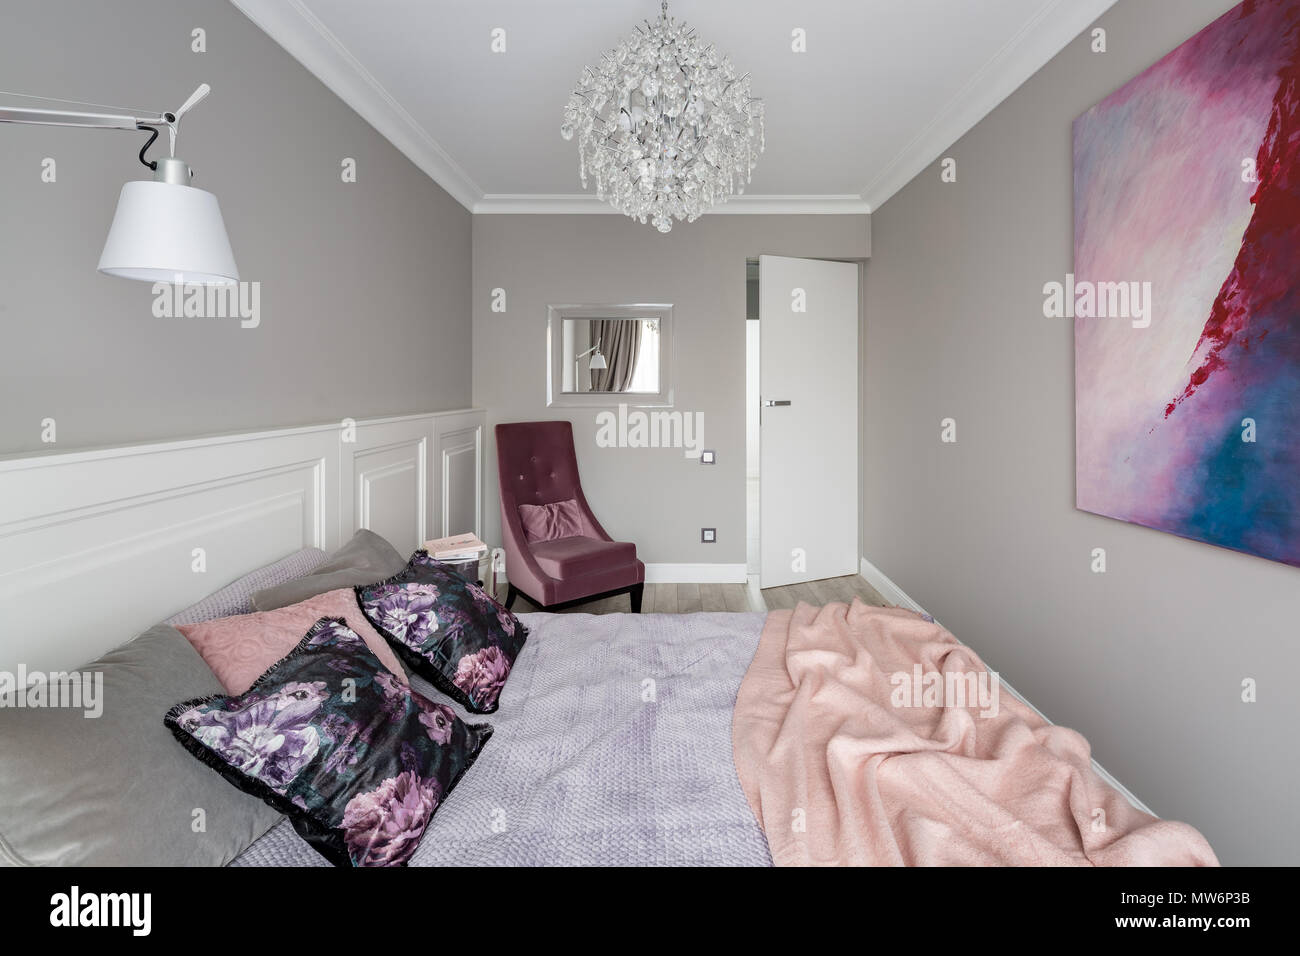 Lampadari In Camera Da Letto romantic bedroom with double bed, upholstered chair and